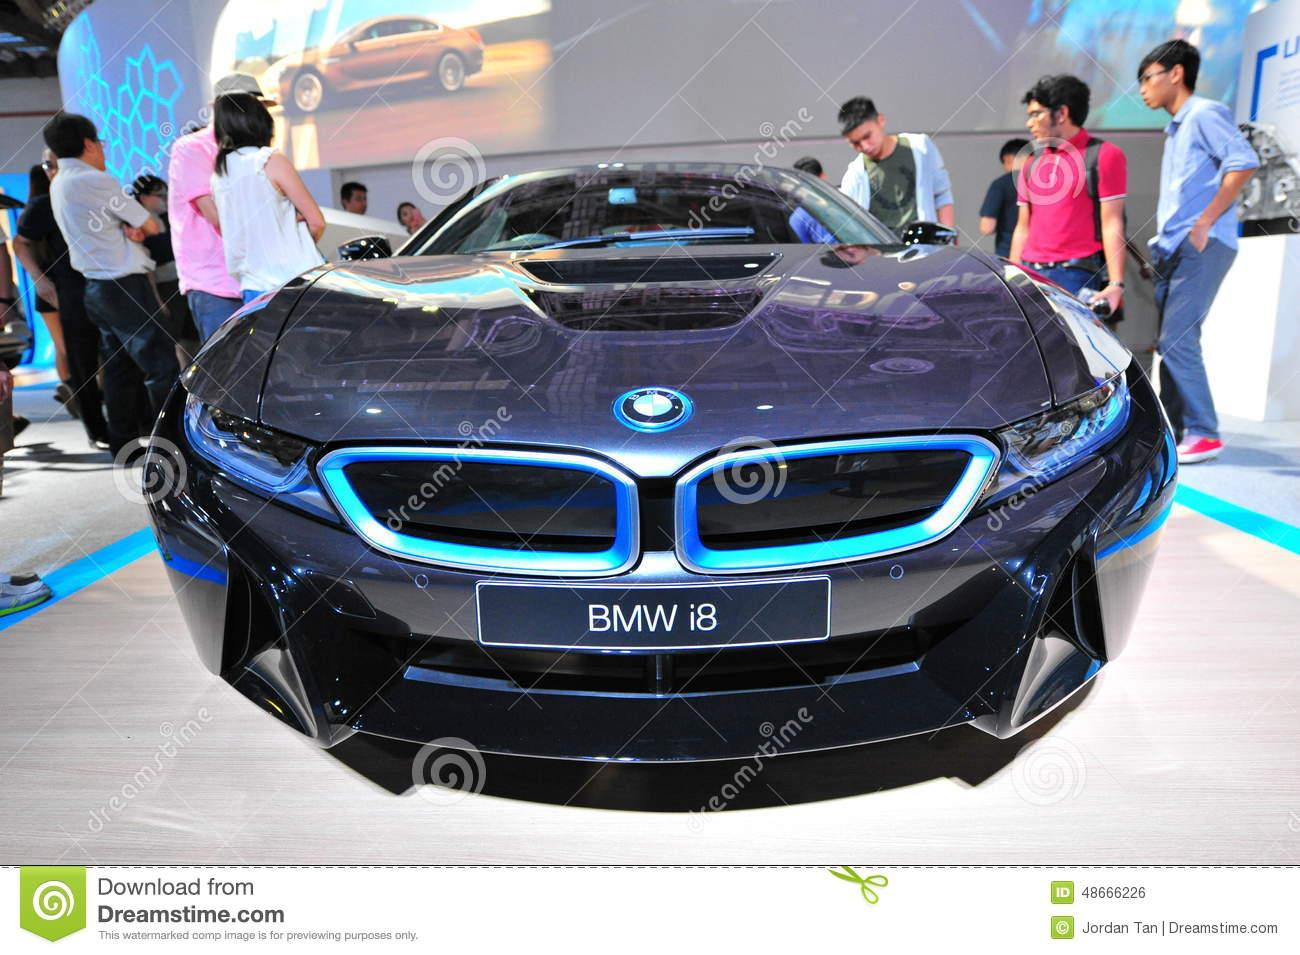 voiture de sport hybride embrochable de bmw i8 sur l 39 affichage au monde 2014 de bmw photo. Black Bedroom Furniture Sets. Home Design Ideas